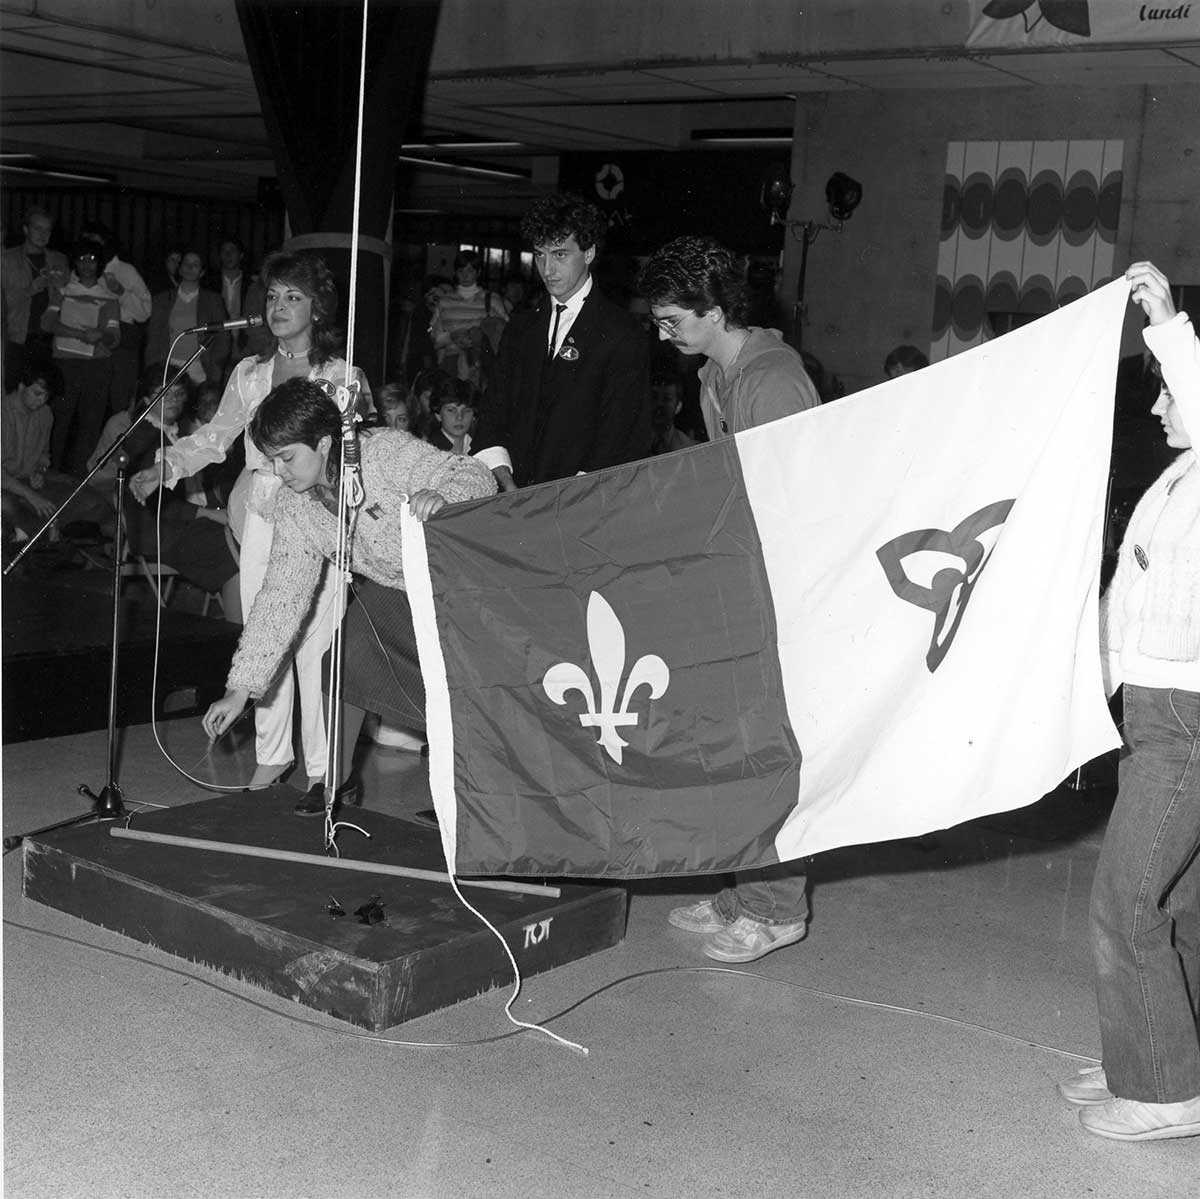 Raising the Franco-Ontarian flag for the first time at the University of Ottawa, 1974. (Archives of the University of Ottawa, AUO-PHO-NB-6-1983-6).